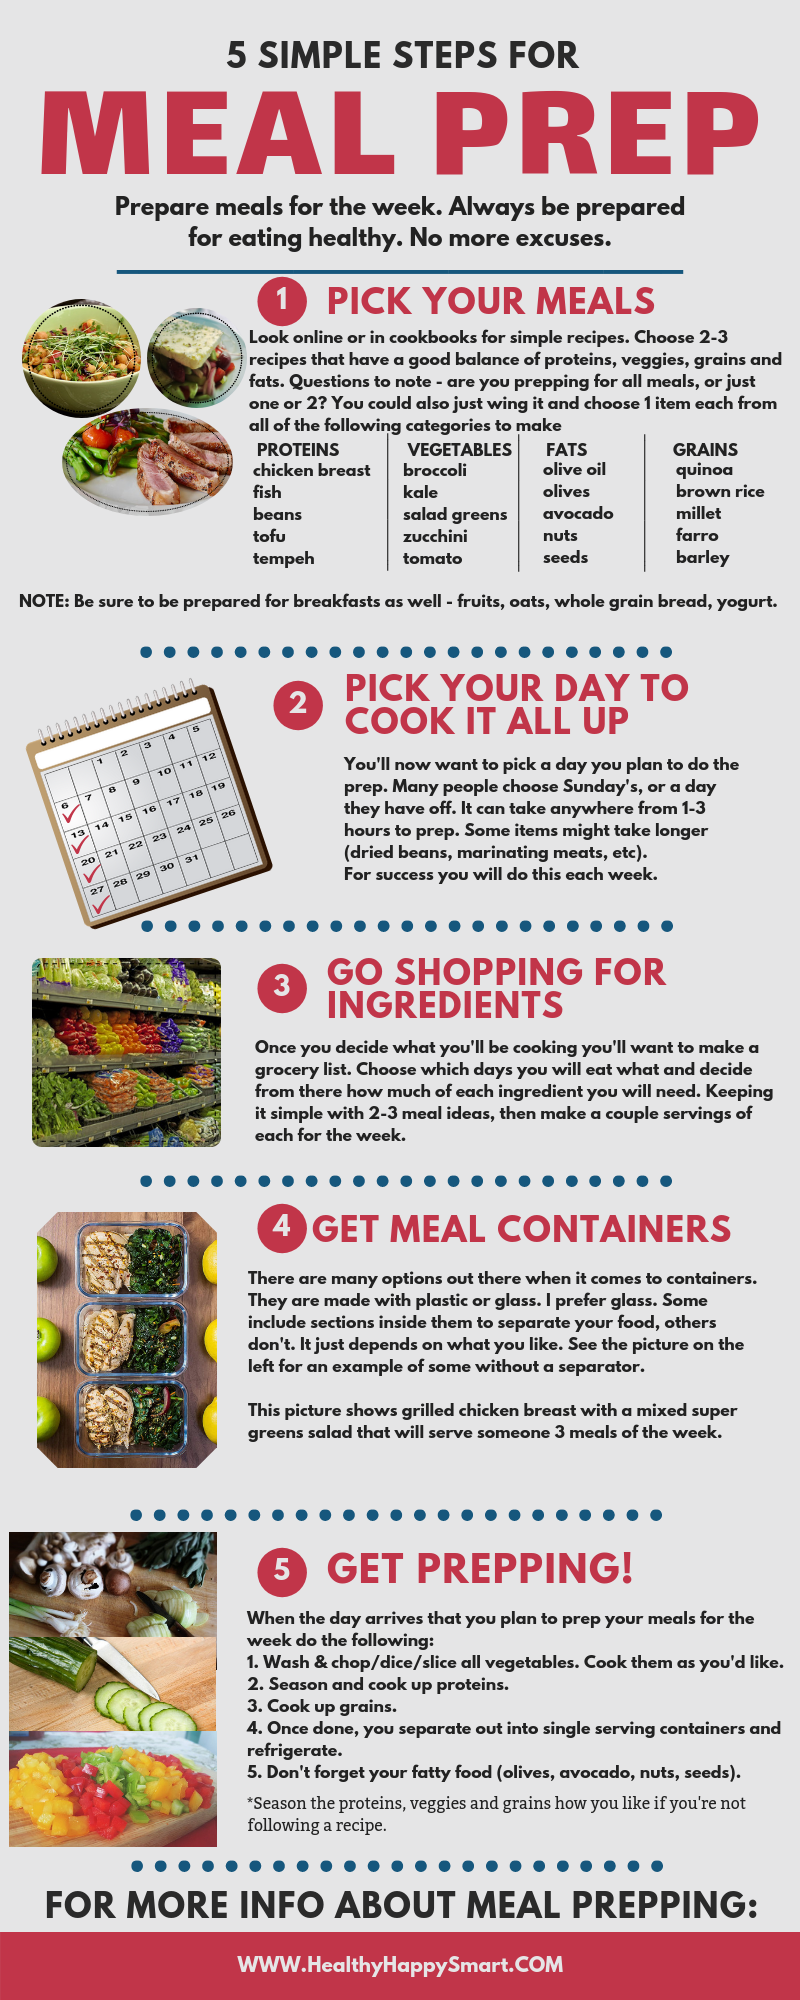 healthy meal prep steps to eating healthy throughout the week. Always be prepared for clean eating.